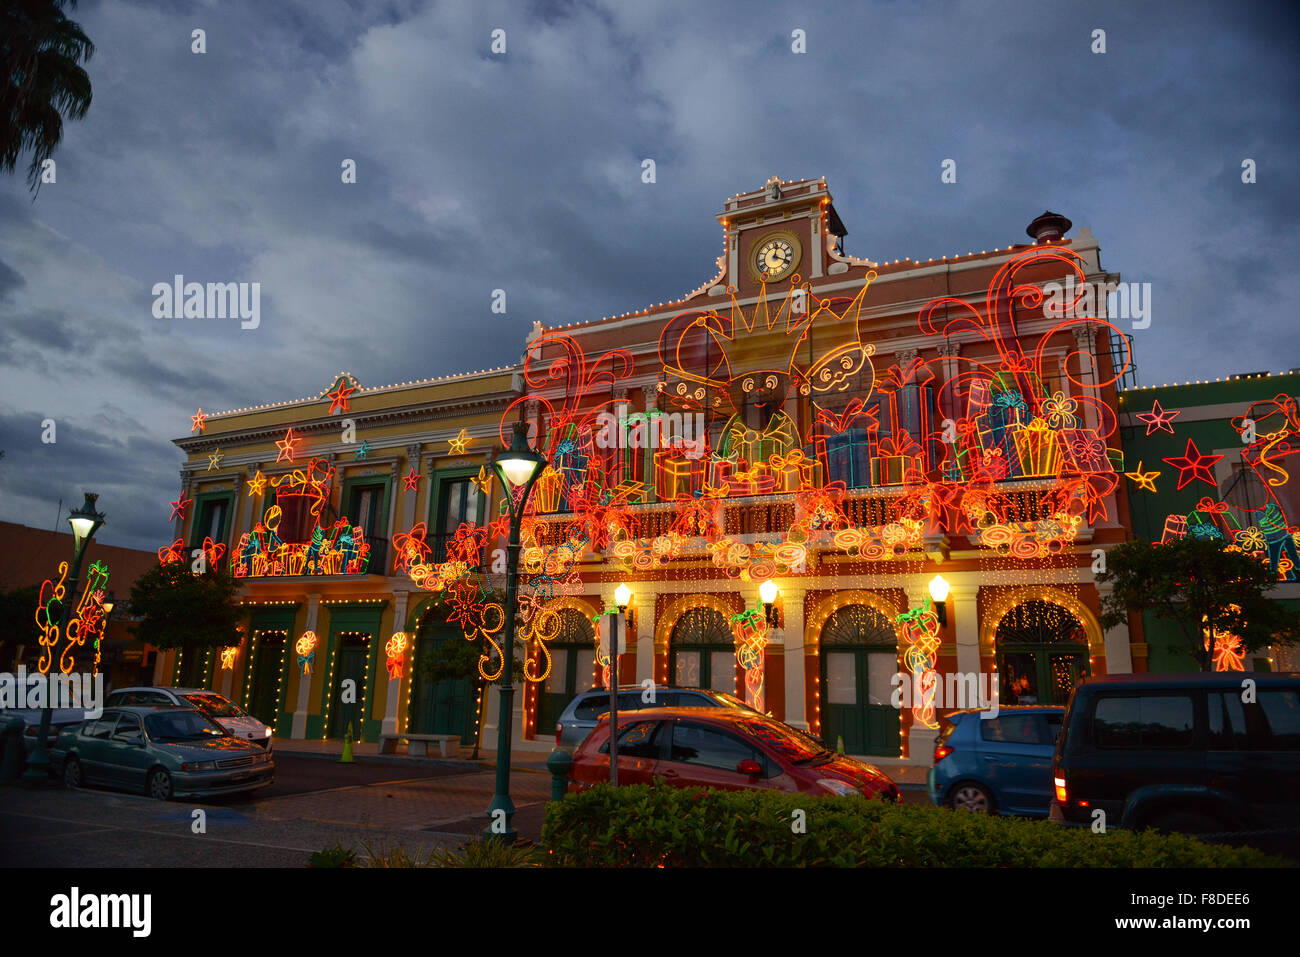 City hall christmas light decoration at the plaza of juana diaz city hall christmas light decoration at the plaza of juana diaz puerto rico caribbean island usa territory biocorpaavc Choice Image